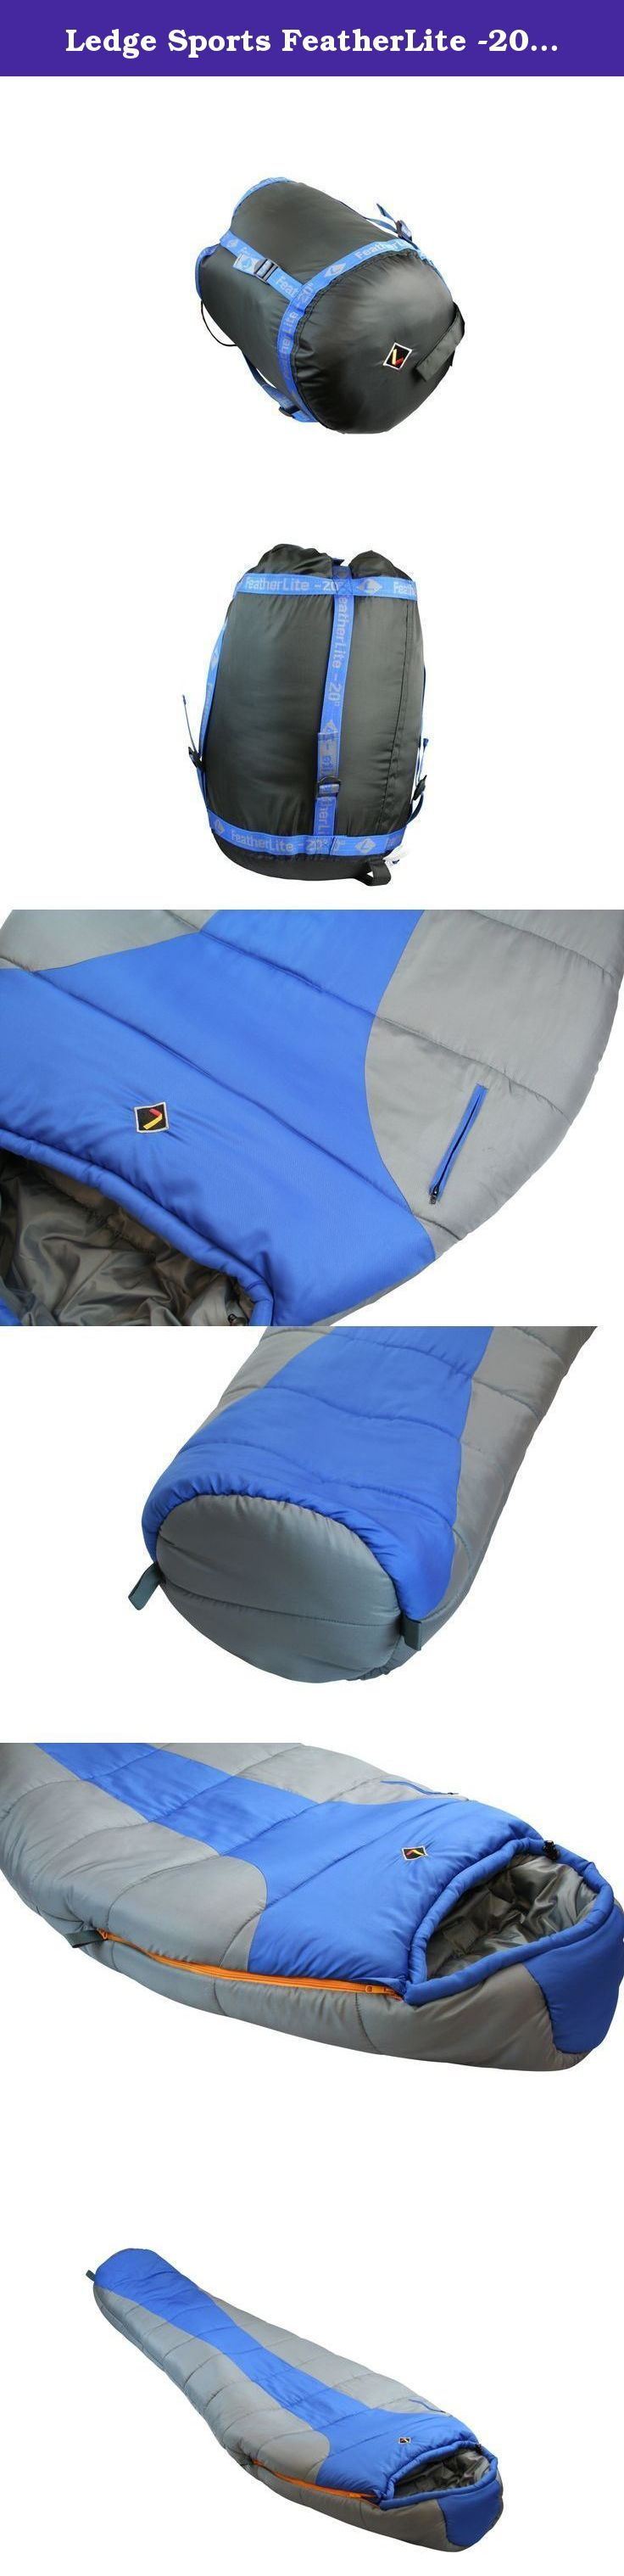 Ledge Sports FeatherLite -20 F Degree Ultra Light Design, Ultra Compact Sleeping Bag (84 X 32 X 20, Blue). Built for size and weight restrictions on extended journeys. The Featherlite is regular size with premium fill. Temperature rating is a guage for experienced users who understand proper equipment use. Unlike other Ledge classic and oversize bags it is not a comfort rating but a guide for use.